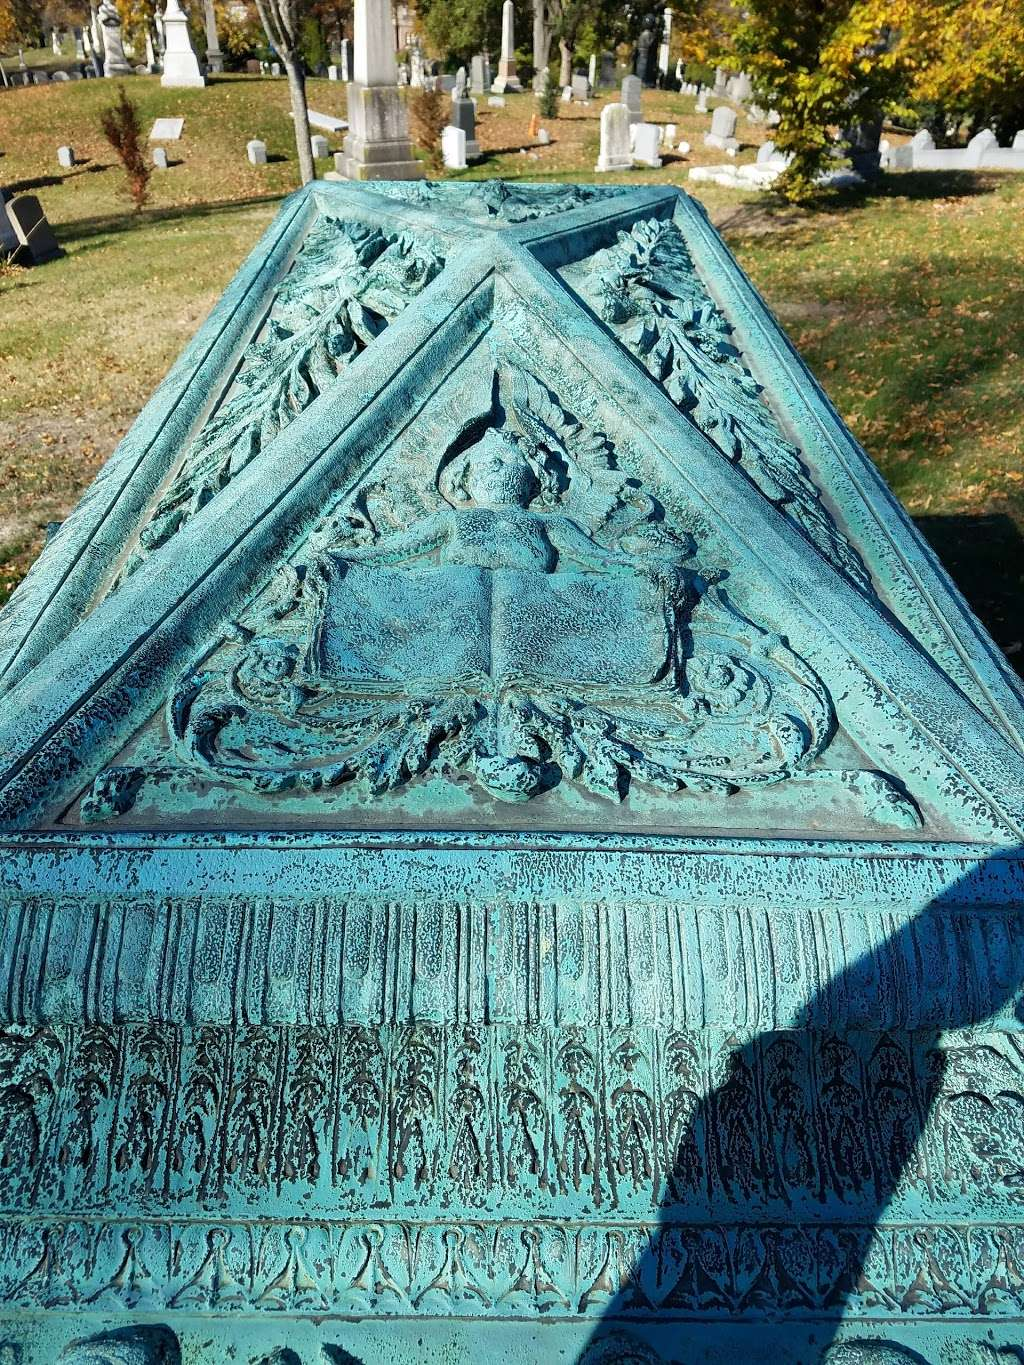 Green-Wood Cemetery - cemetery  | Photo 7 of 10 | Address: 500 25th St, Brooklyn, NY 11232, USA | Phone: (718) 768-7300